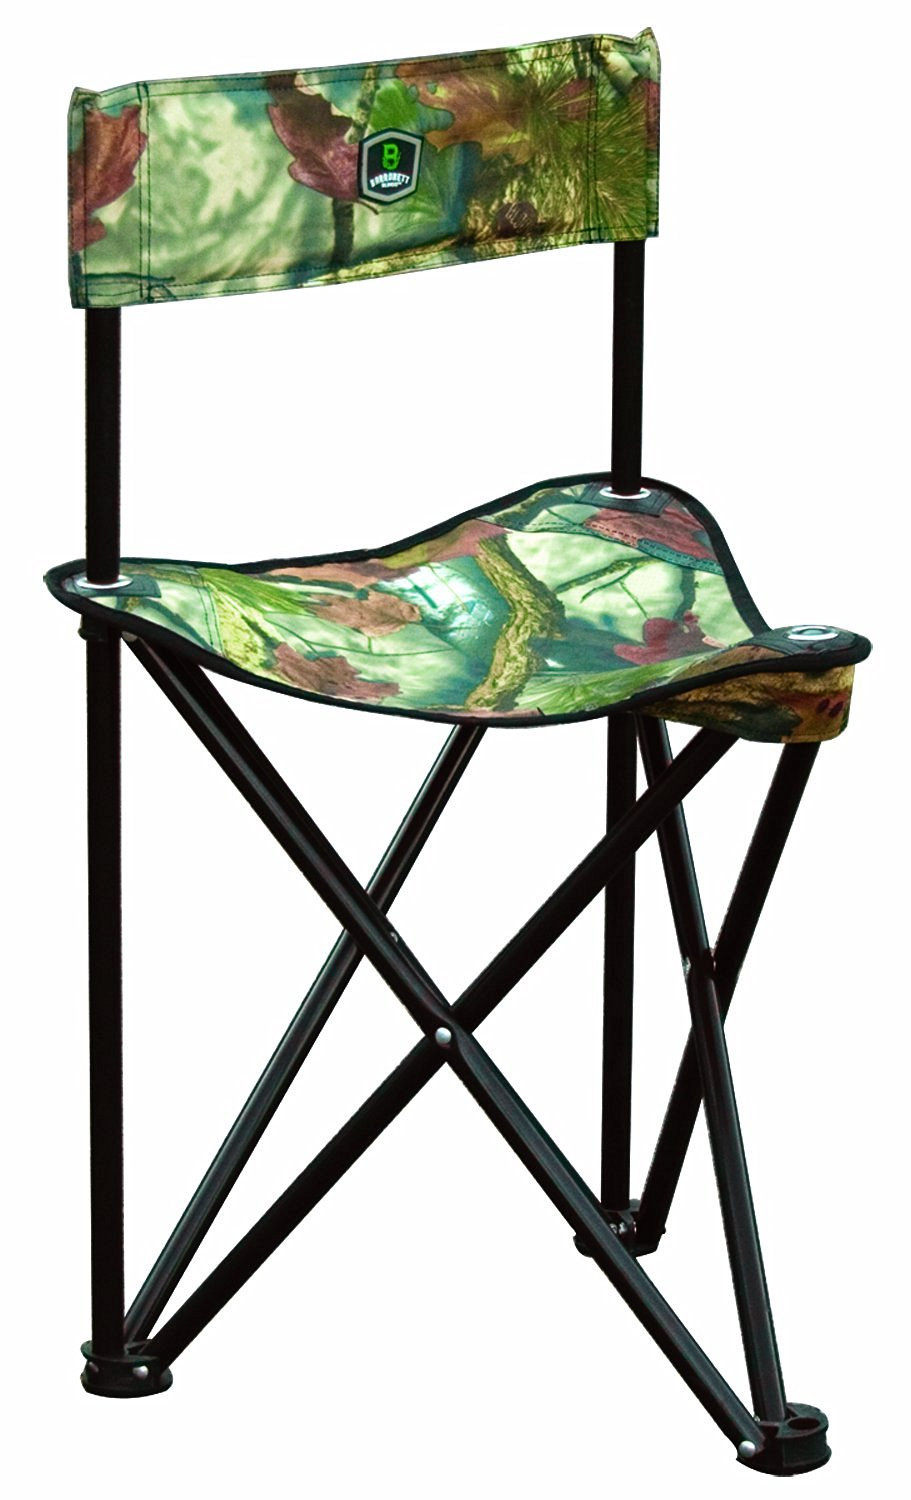 Pleasant Cheap Chair Ground Blind Find Chair Ground Blind Deals On Inzonedesignstudio Interior Chair Design Inzonedesignstudiocom